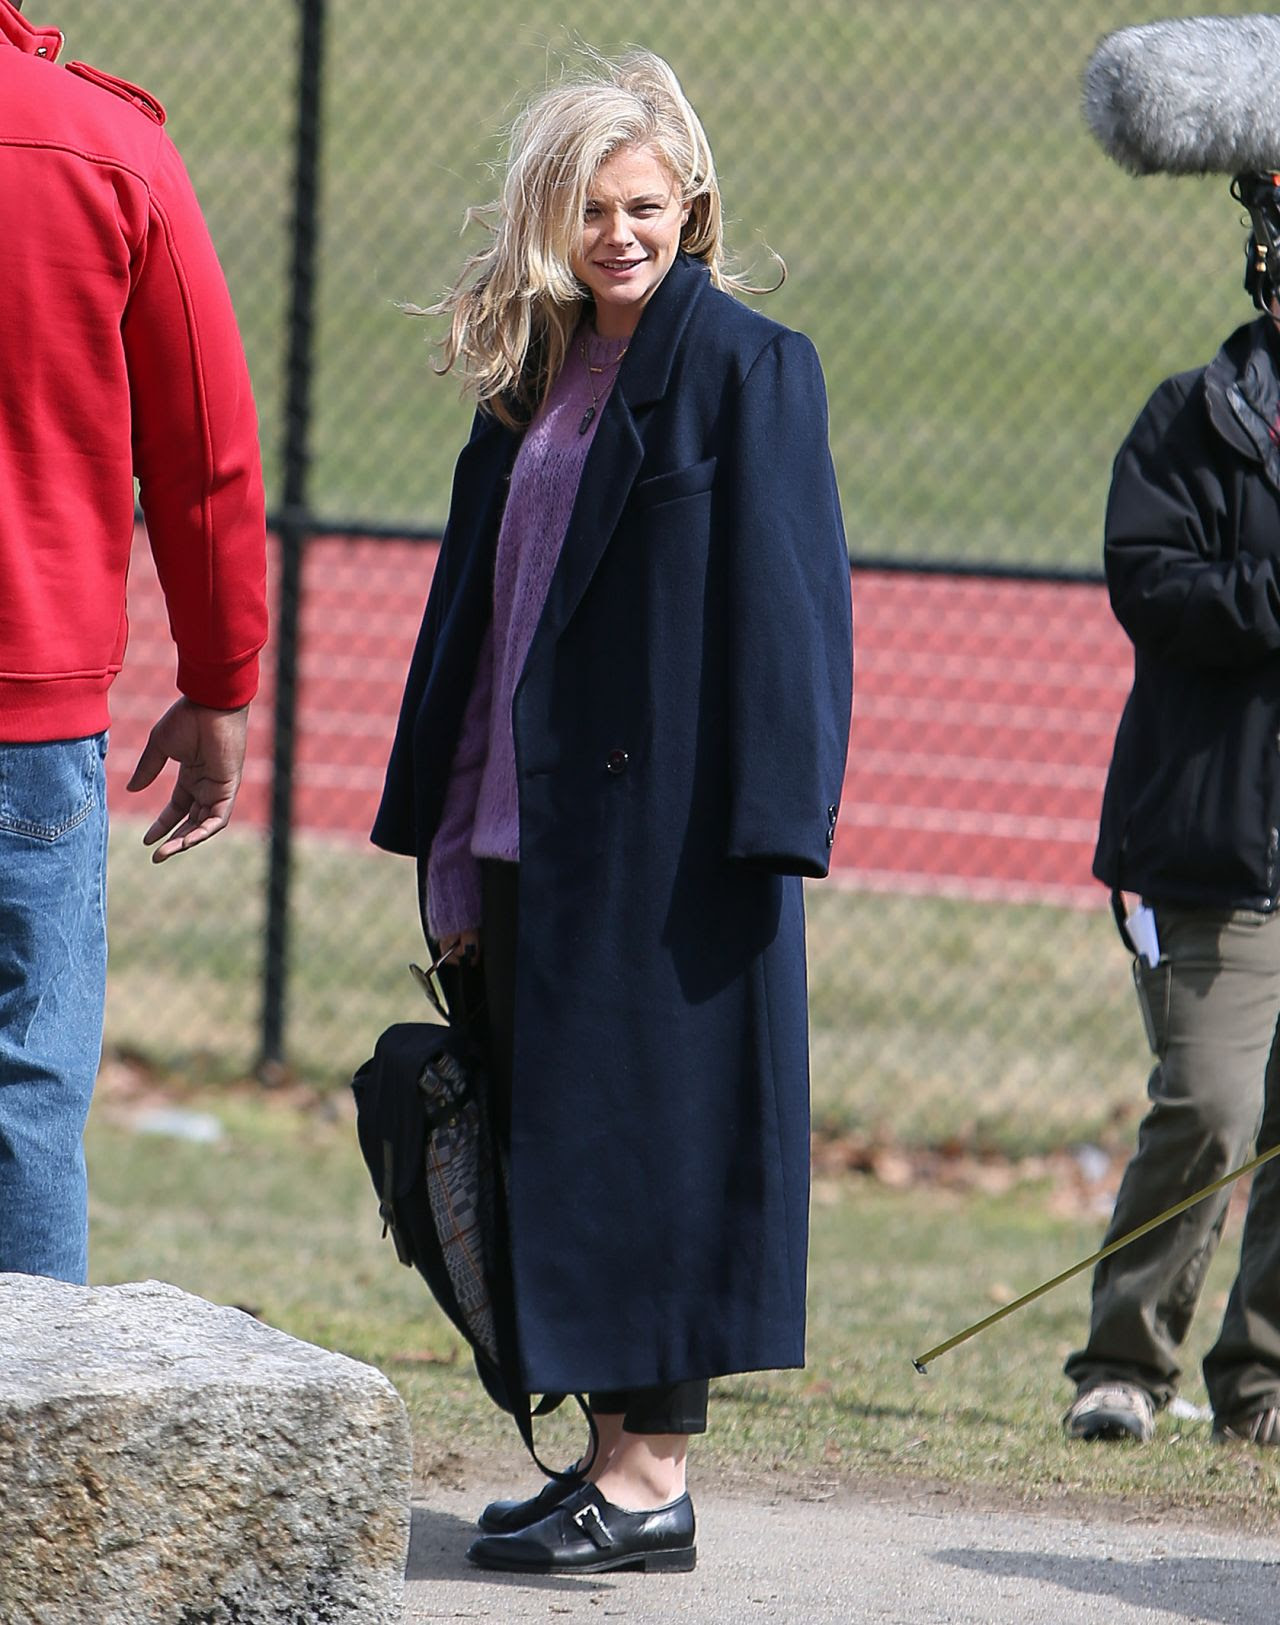 http://celebmafia.com/wp-content/uploads/2015/04/chloe-moretz-set-of-november-criminals-in-providence-rhode-island-april-2015_18.jpg